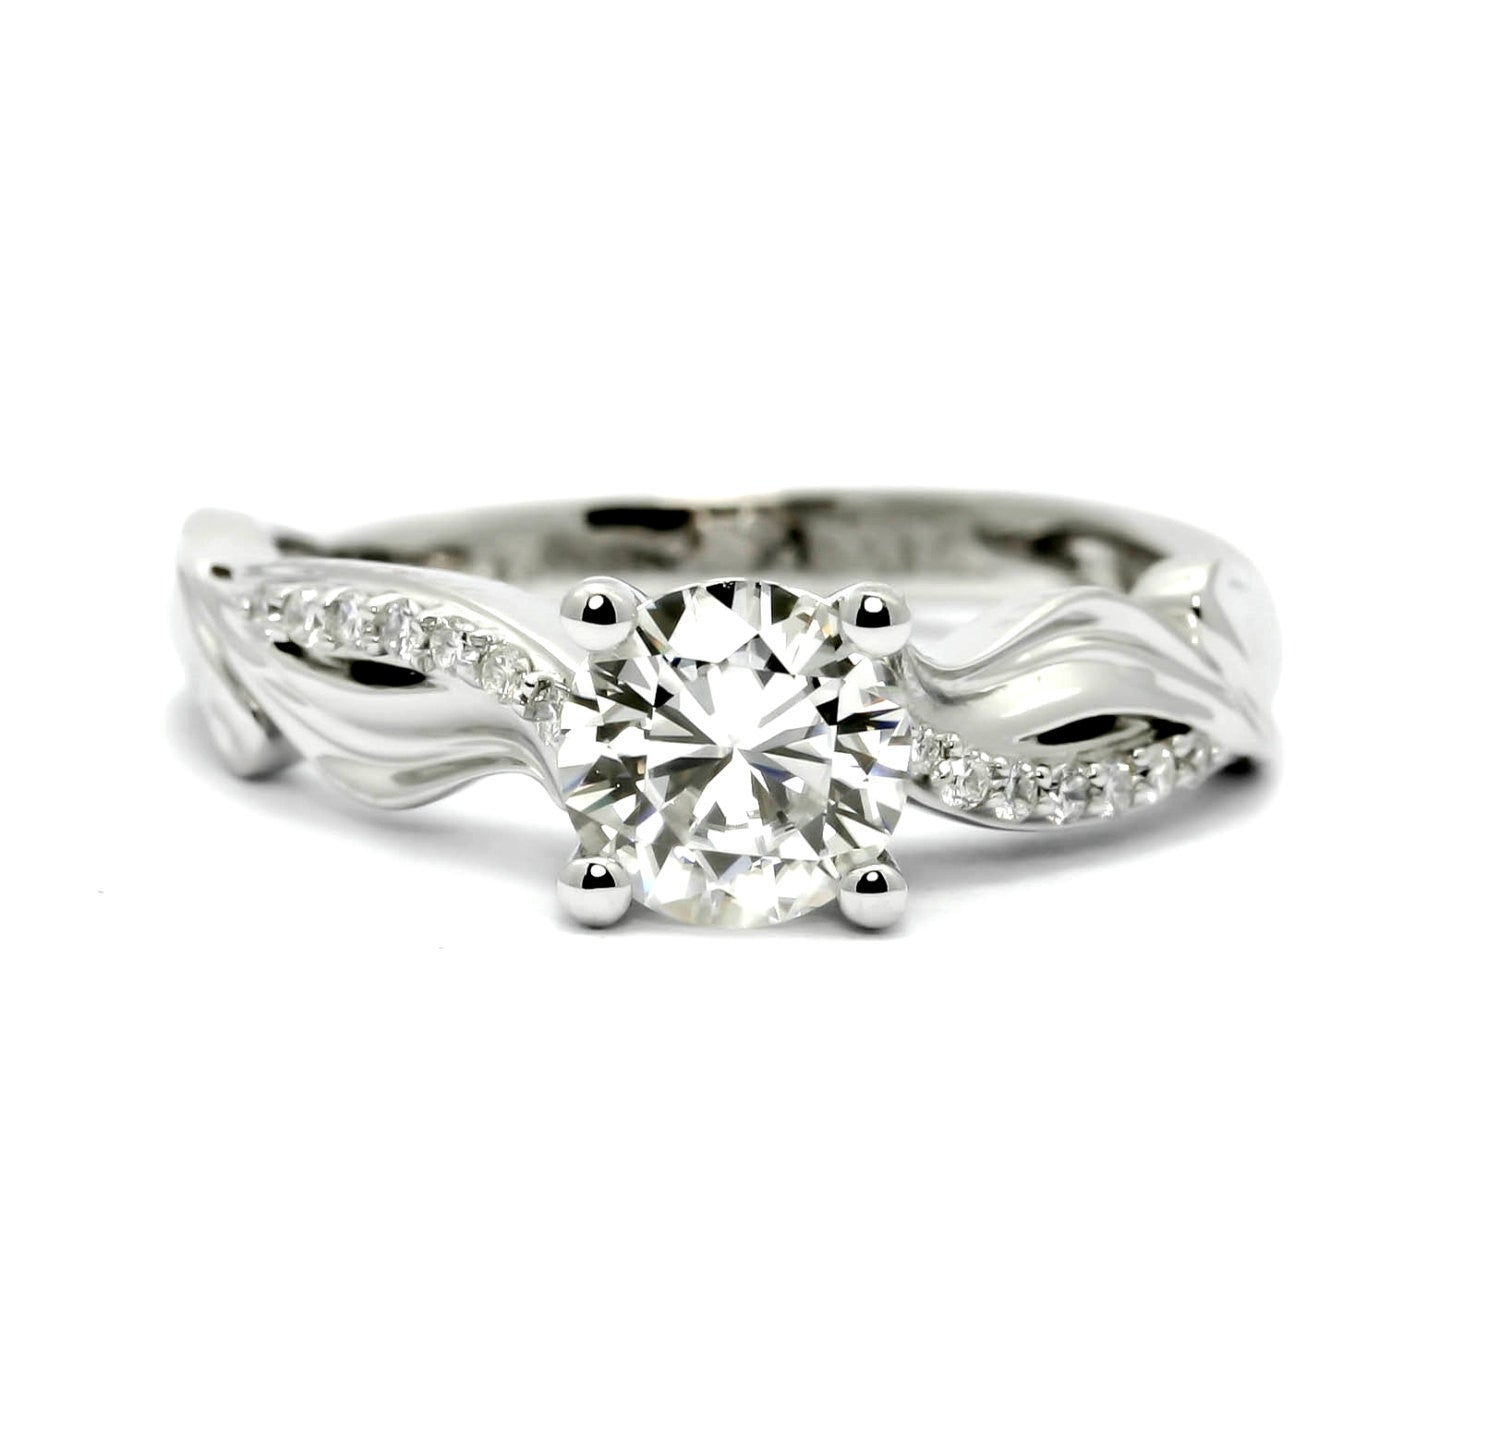 Semi Mount,Unique Diamond Engagement Ring For 1 Carat Center Stone, With 0.09 Carats Of Diamonds, Anniversary Ring - Y11666SE